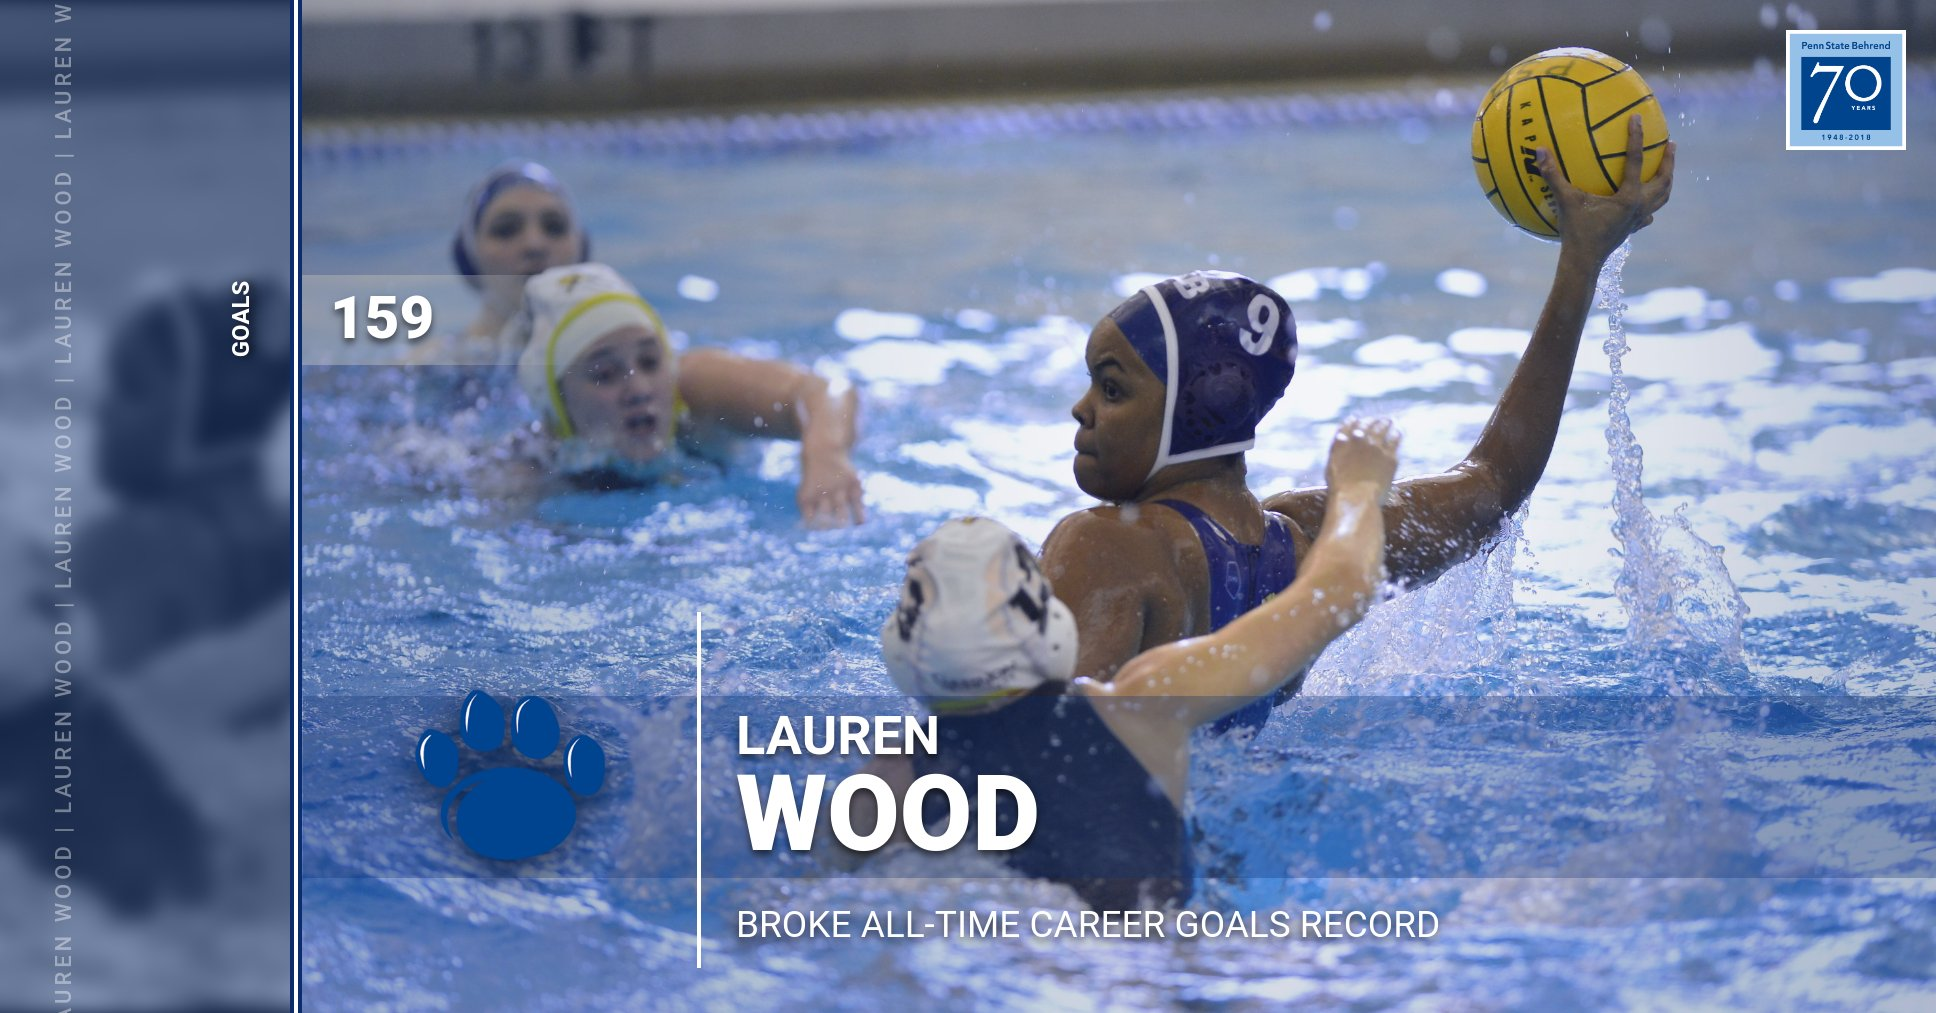 Wood Breaks Behrend Career Goals Record; Lions Fall to W&J and Grove City